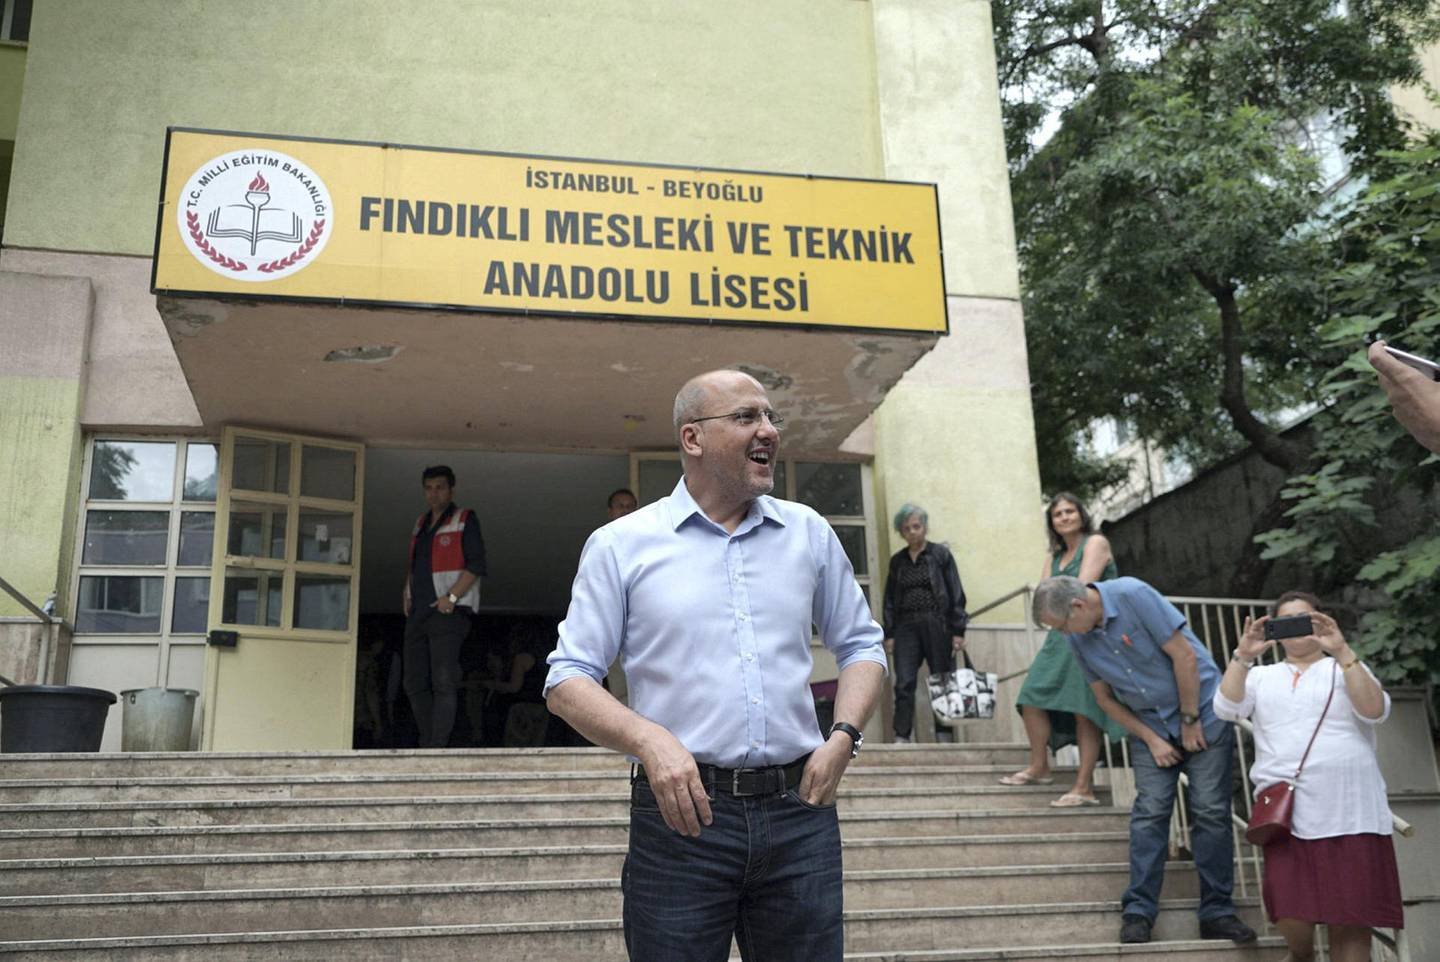 Ahmet Şık, parliamentary candidate for the Pro - Kurdish HDP party, votes in Istanbul. Photo by Shawn Carrie